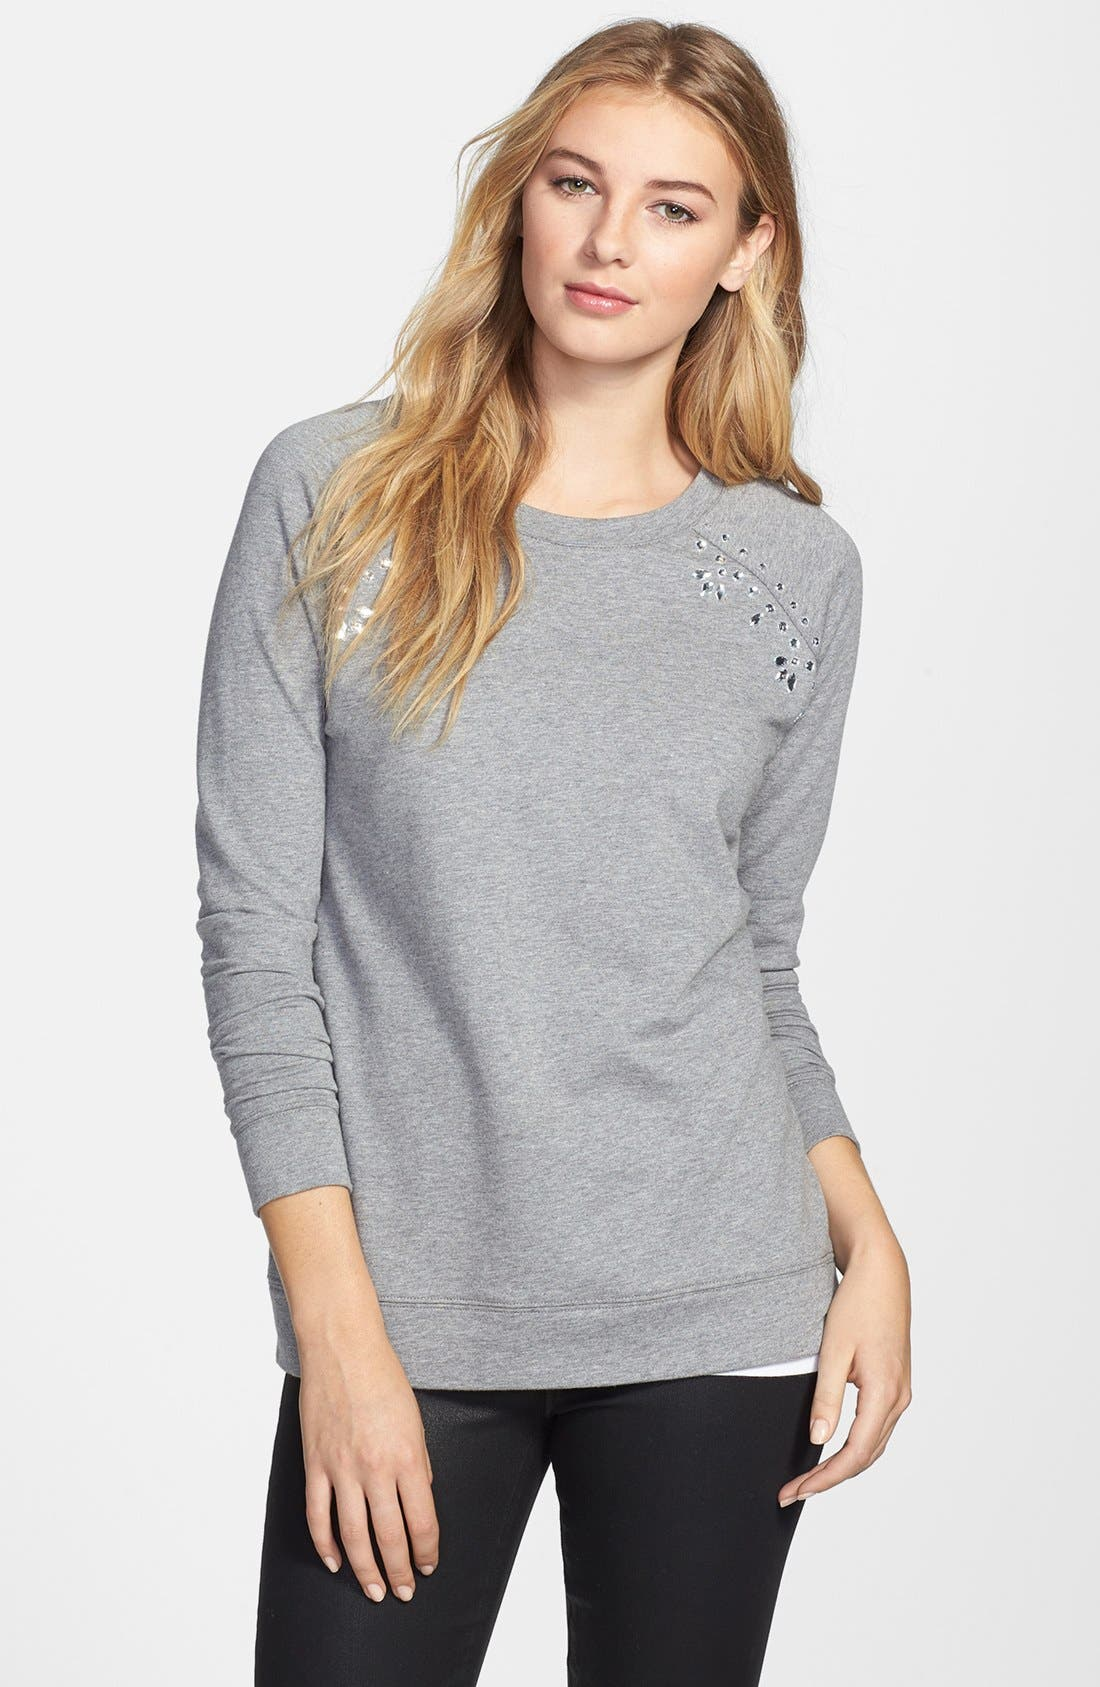 Main Image - Two by Vince Camuto Embellished Raglan Sleeve Cotton Blend Sweatshirt